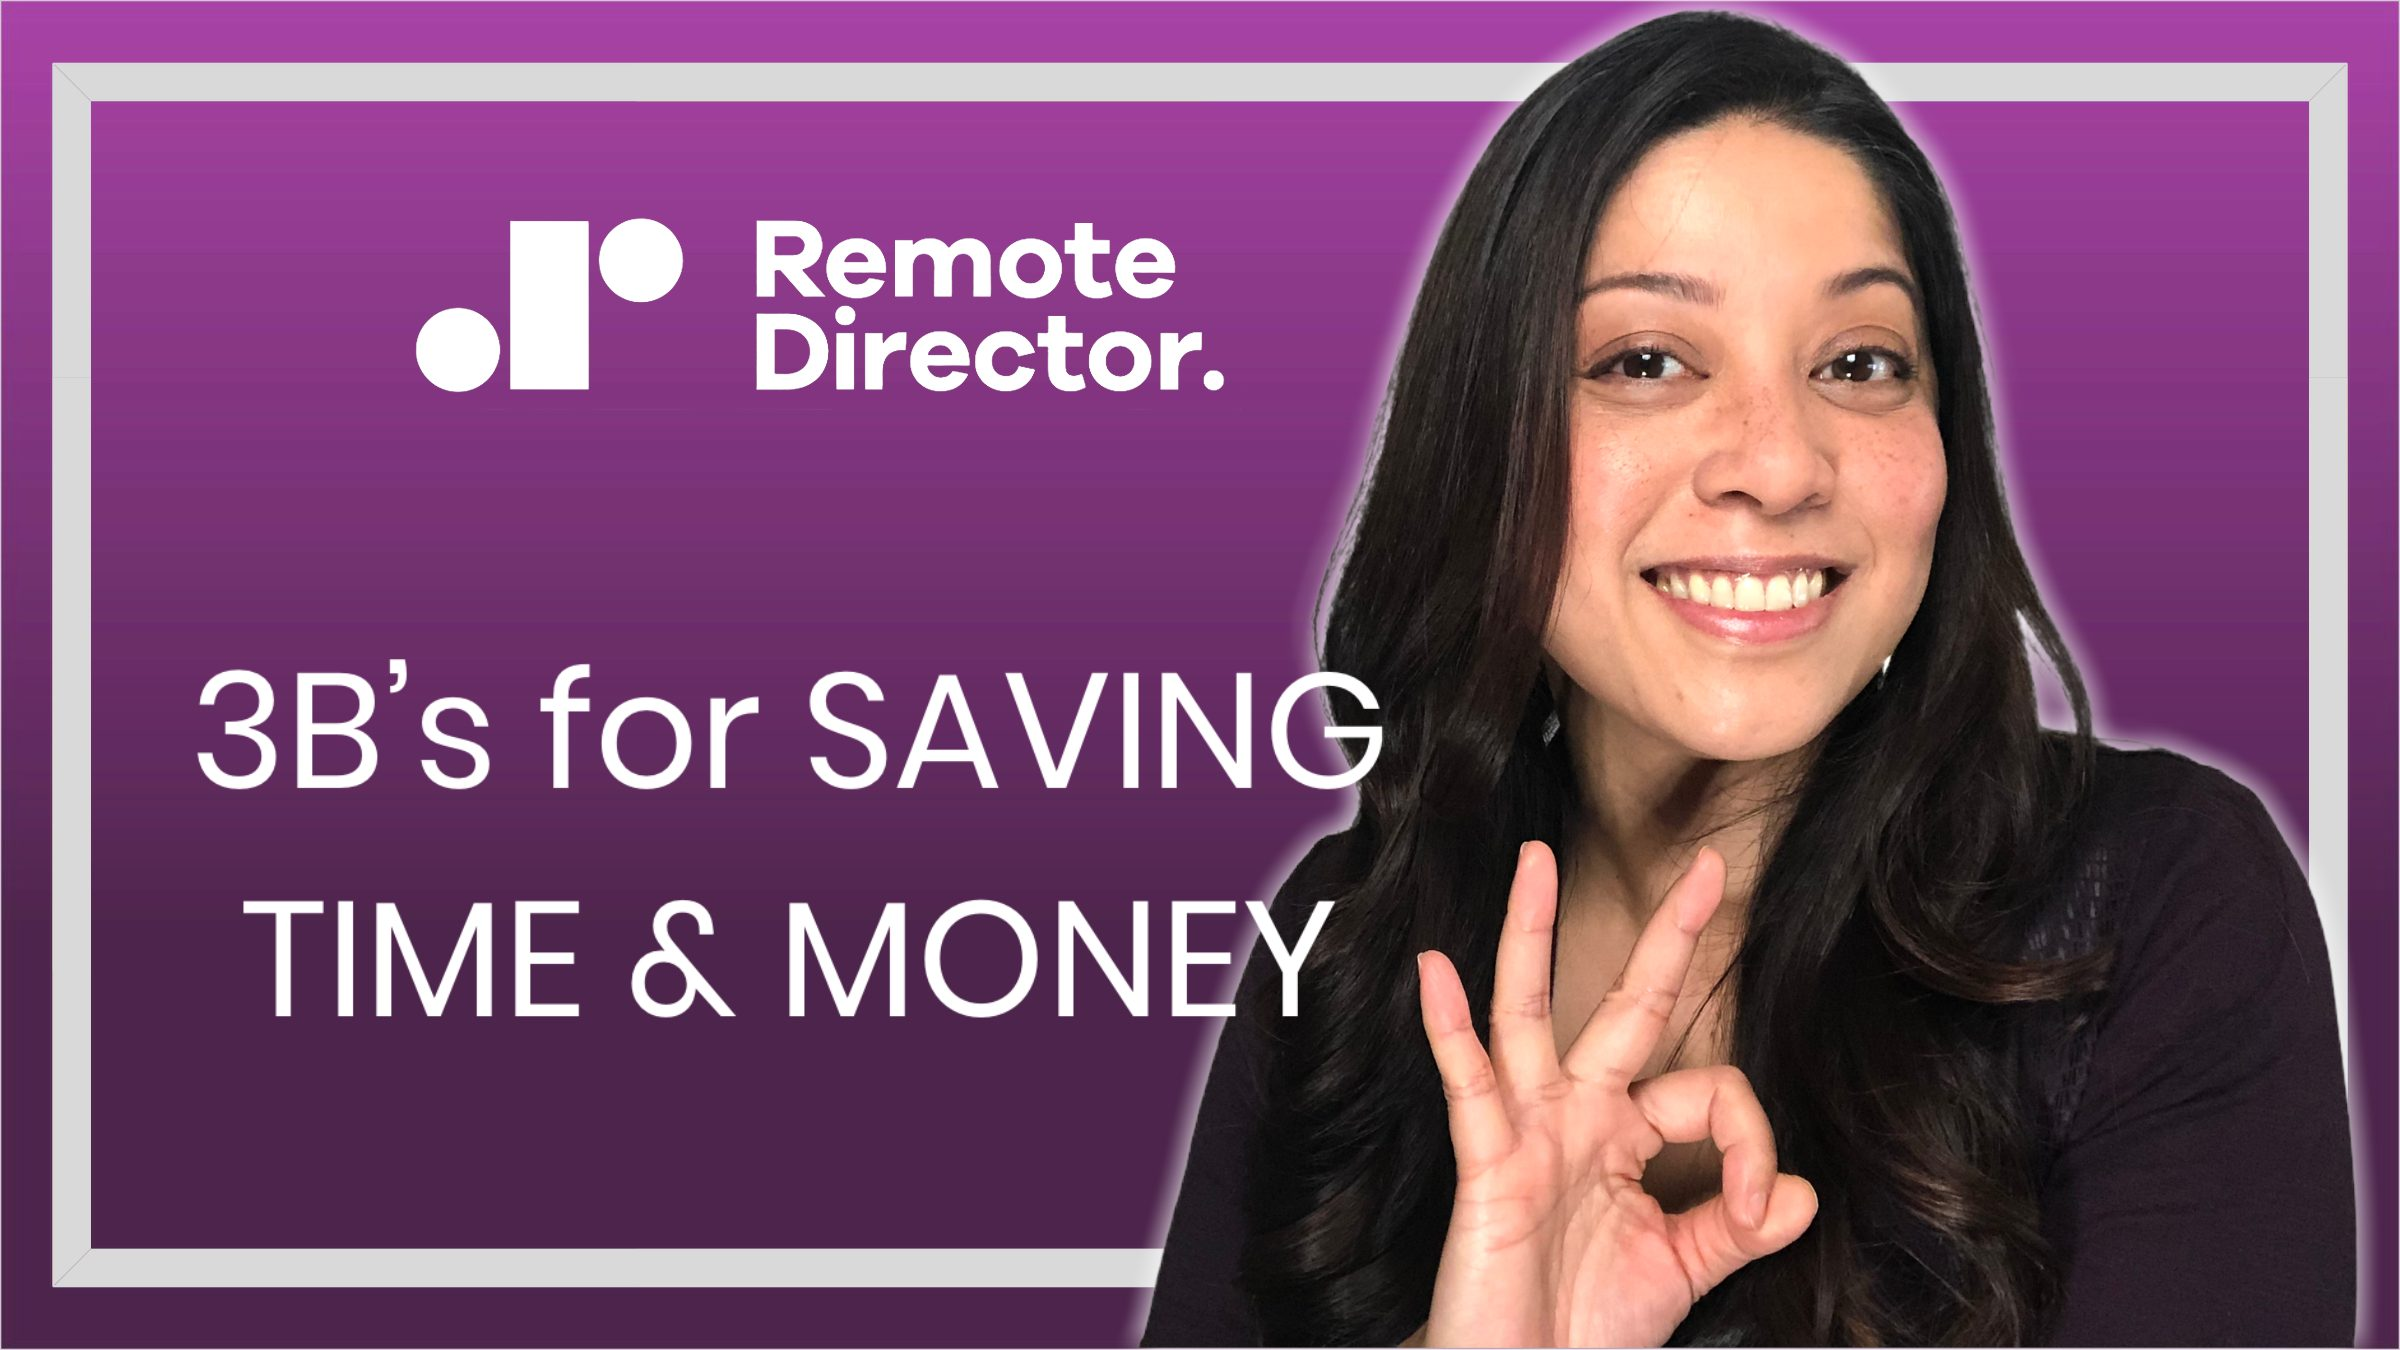 3Bs for saving time and money for video